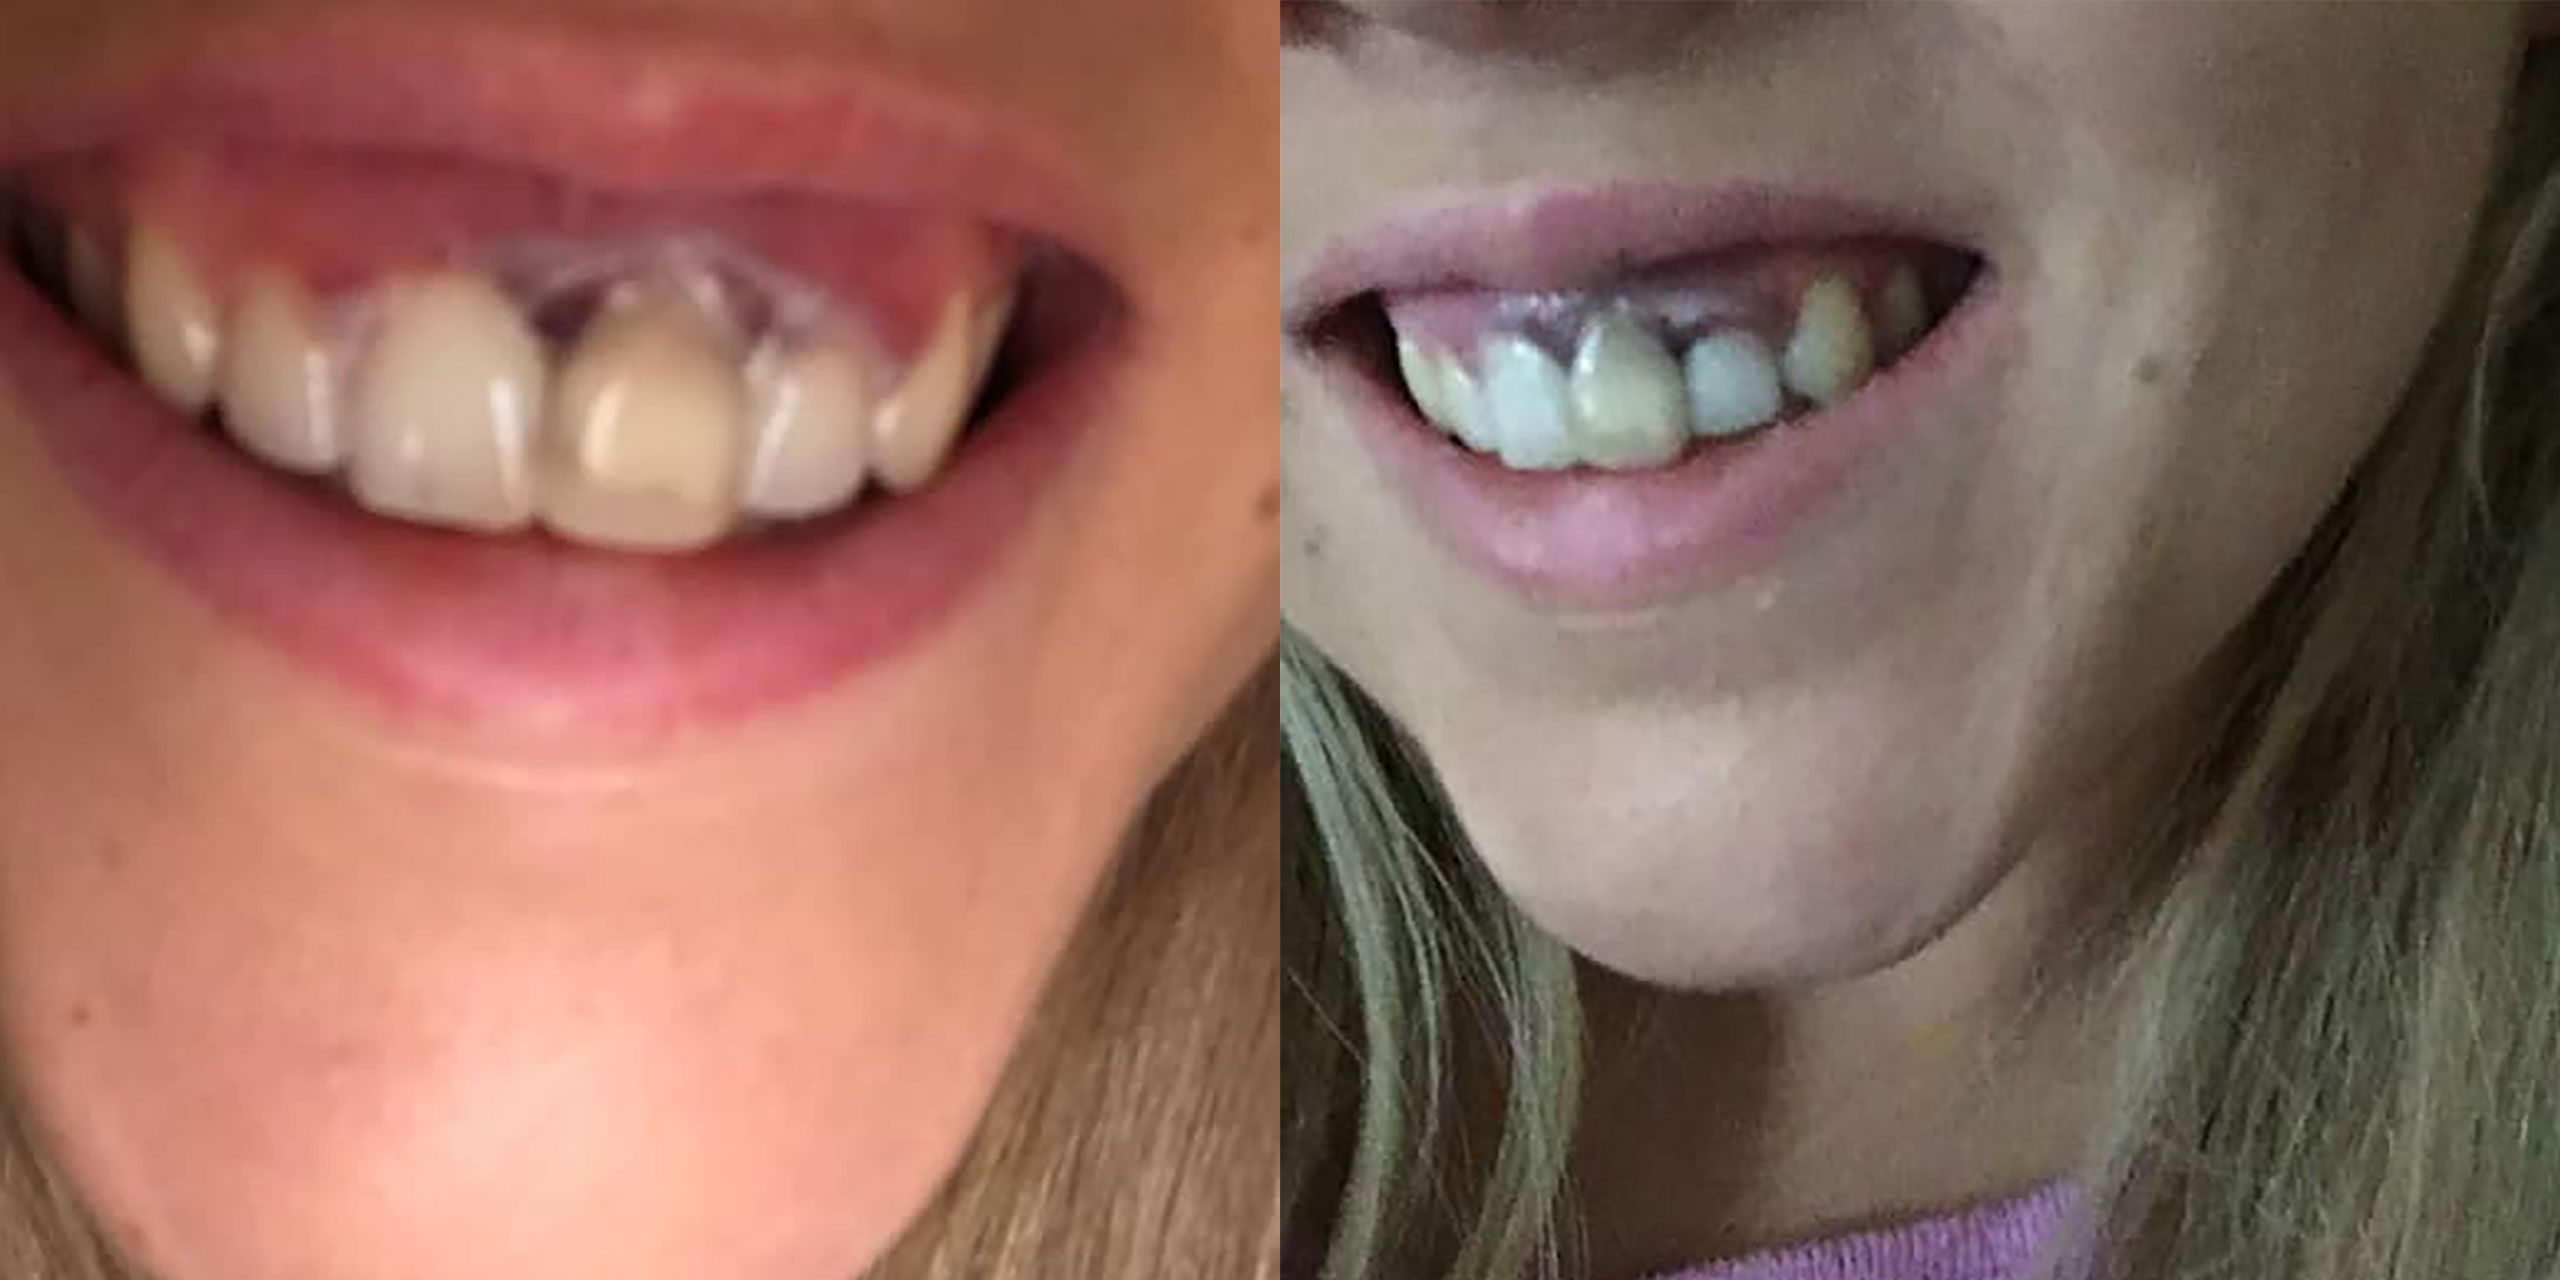 This Woman's Horrifying Teeth-Whitening Experience Left Her With Burned Gums